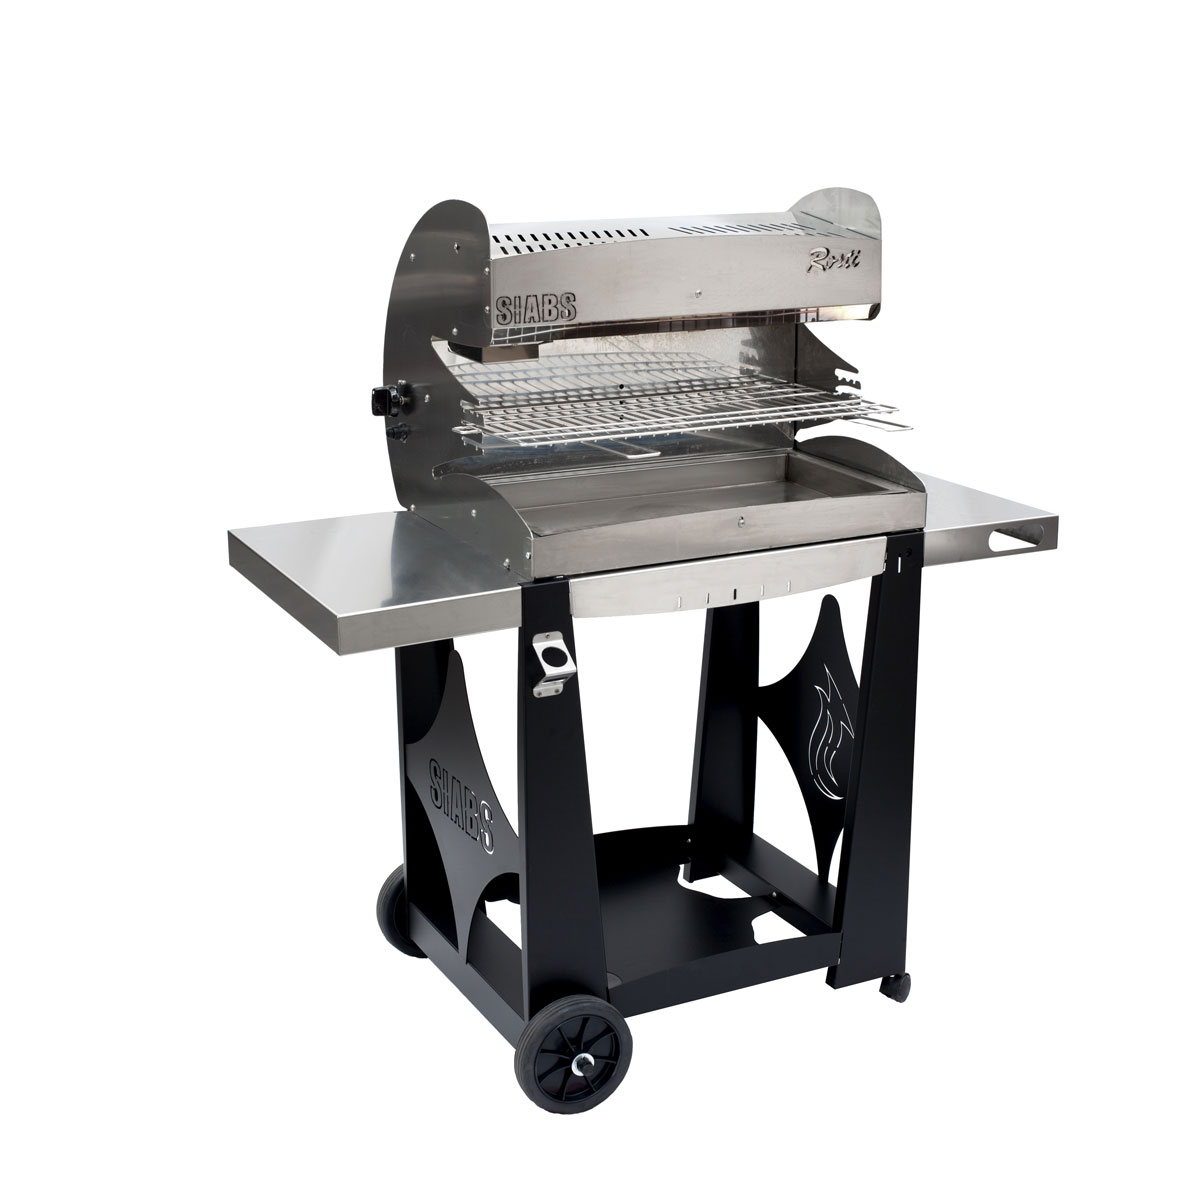 Barbecue au gaz ROSTI 360 avec chariot - Outdoor Heating